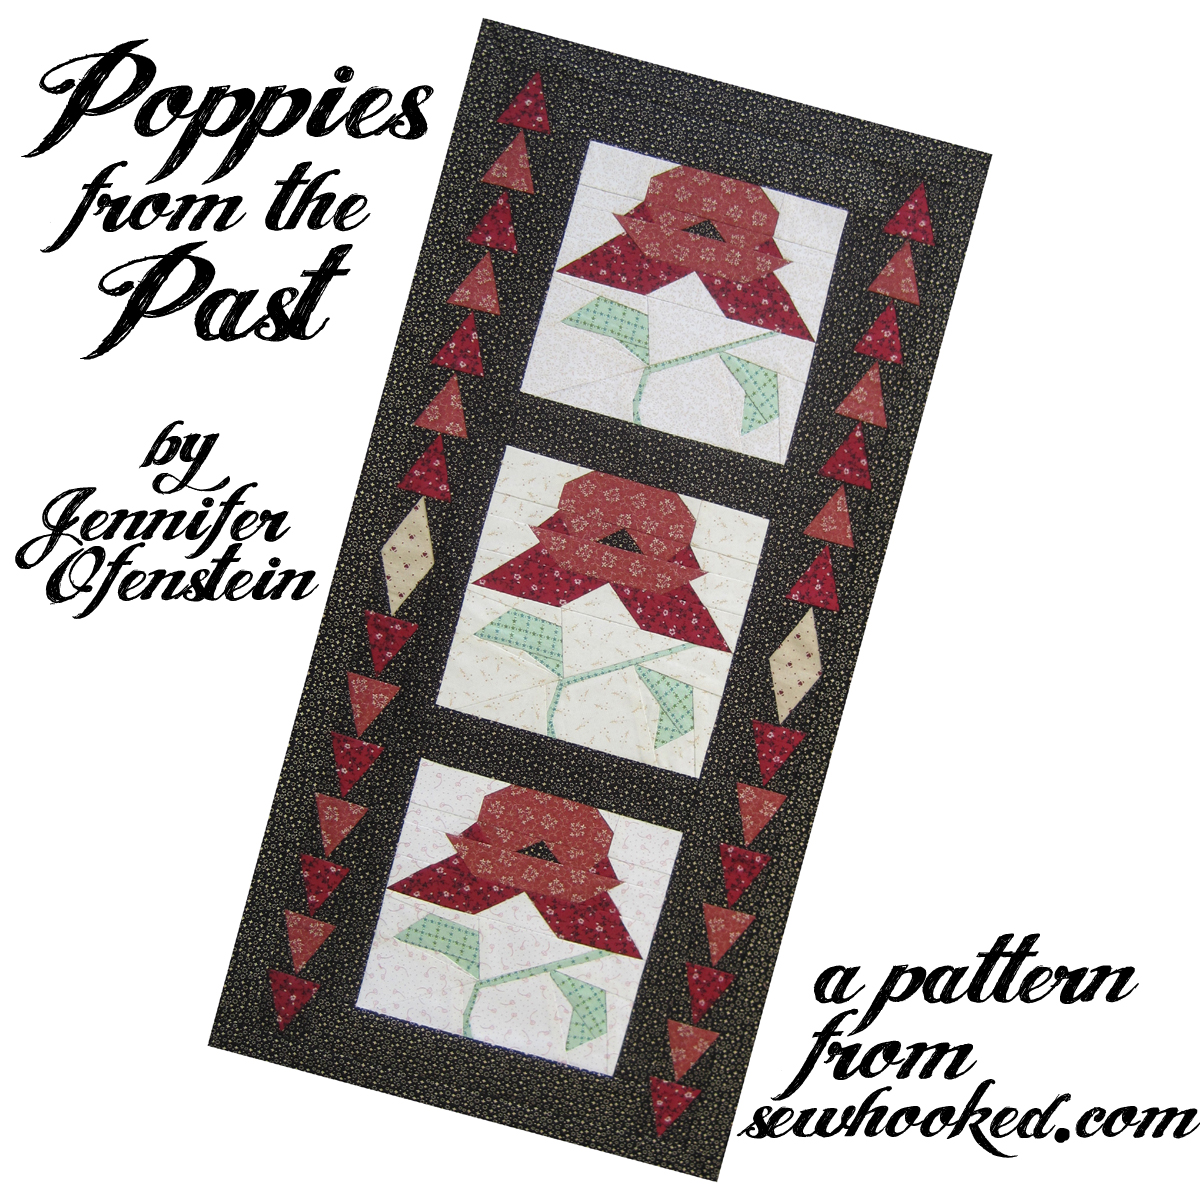 poppies title page.jpg